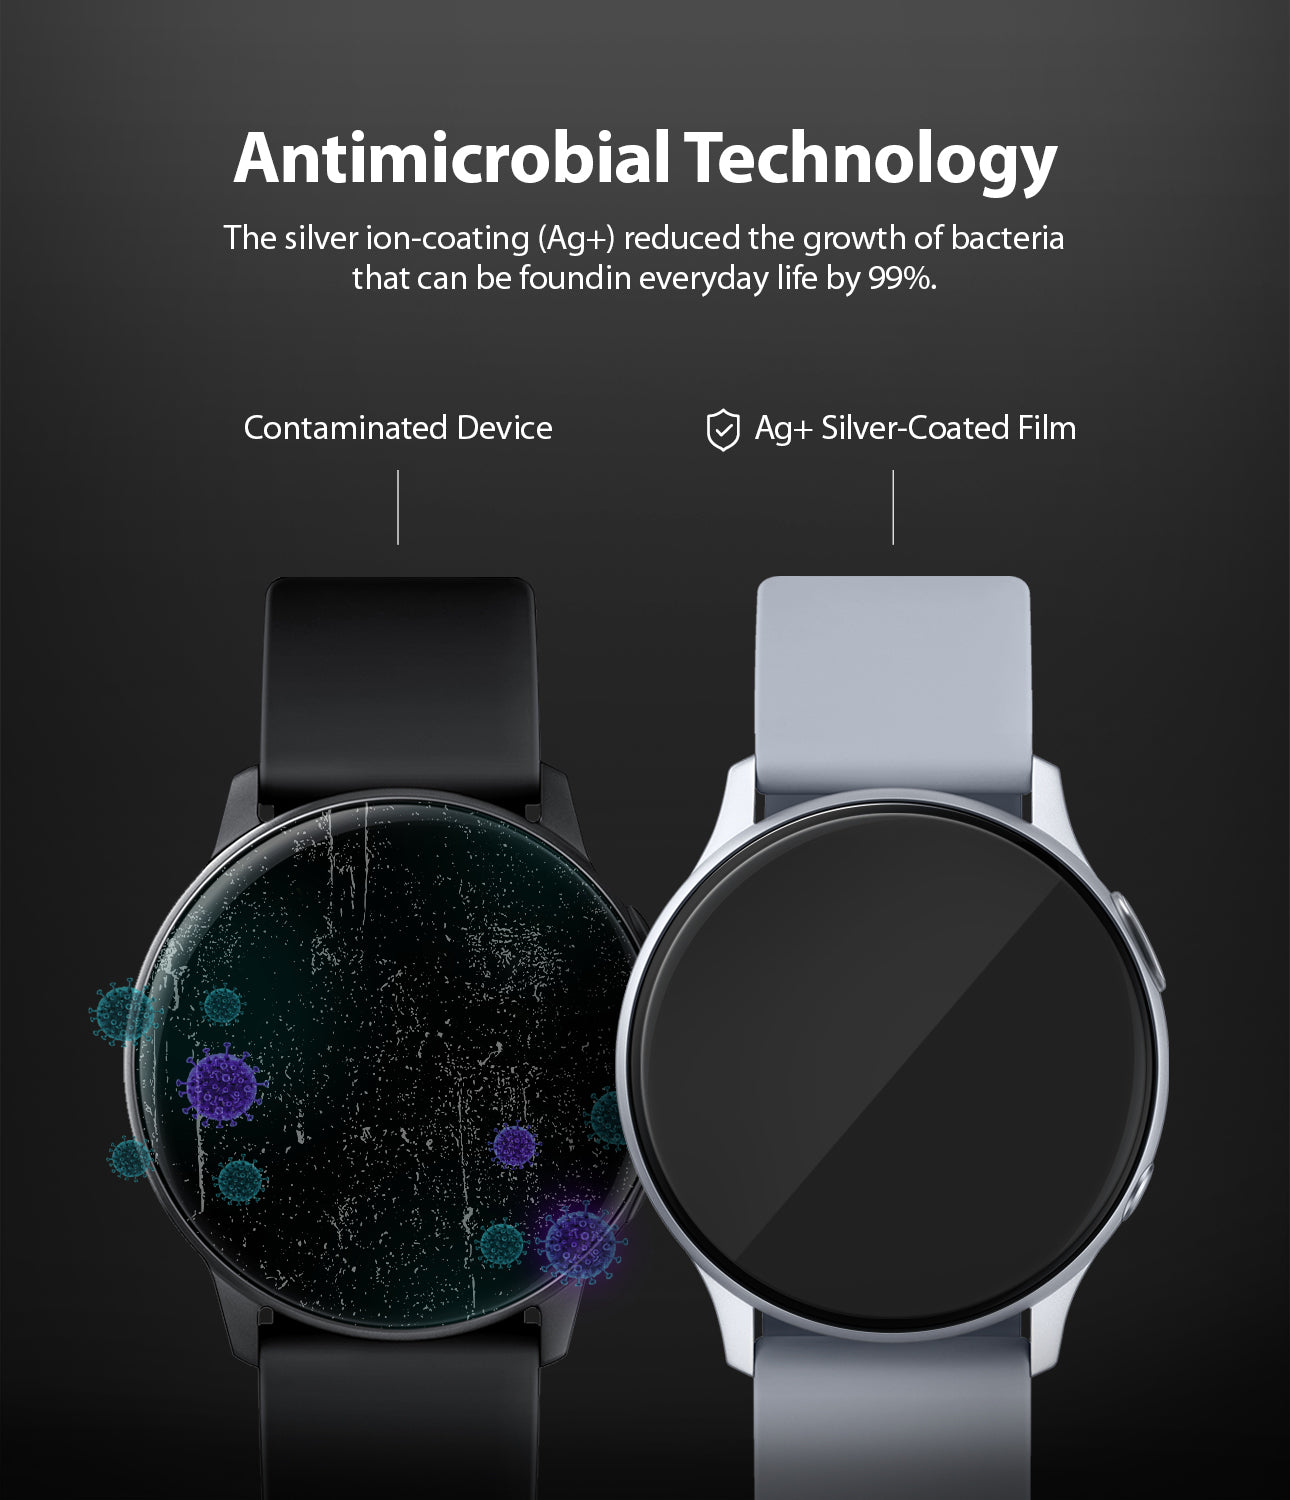 antimicrobial technology : the silver ion-coating reduces the growth of bacteria that can be found in everyday life by 99%